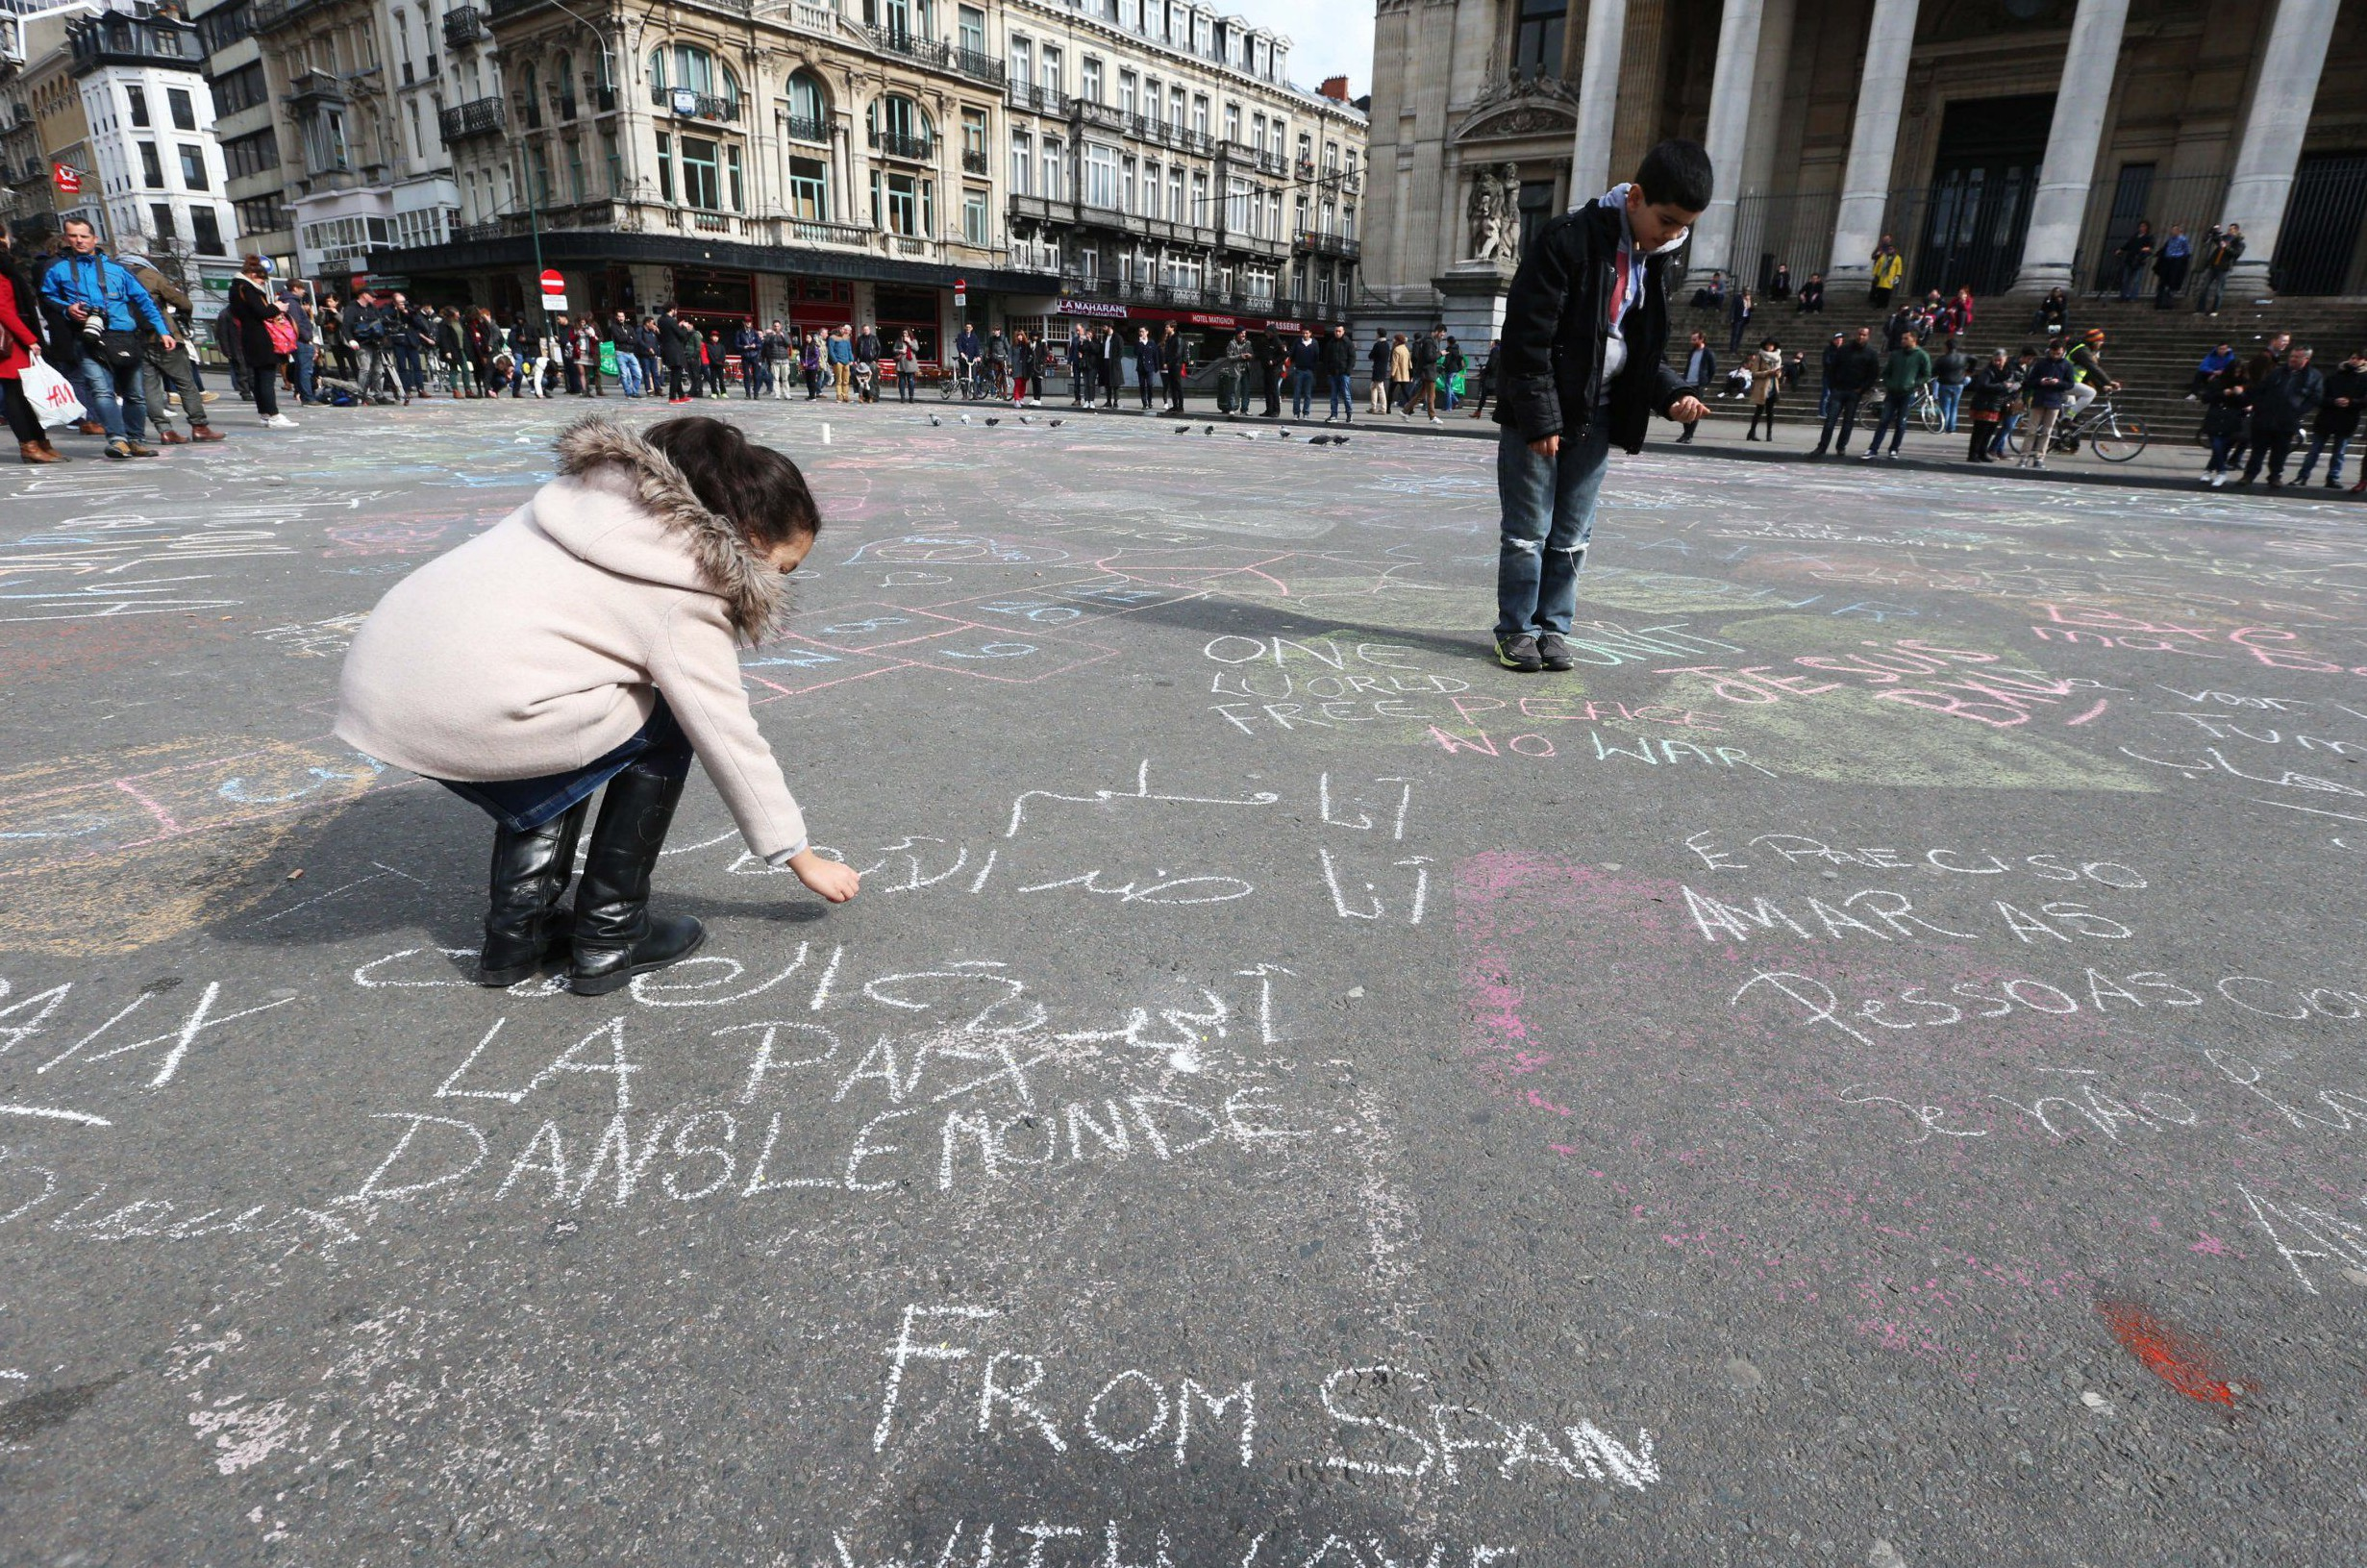 Brussels attacks: #StopIslam is trending on Twitter, but it's not what you think